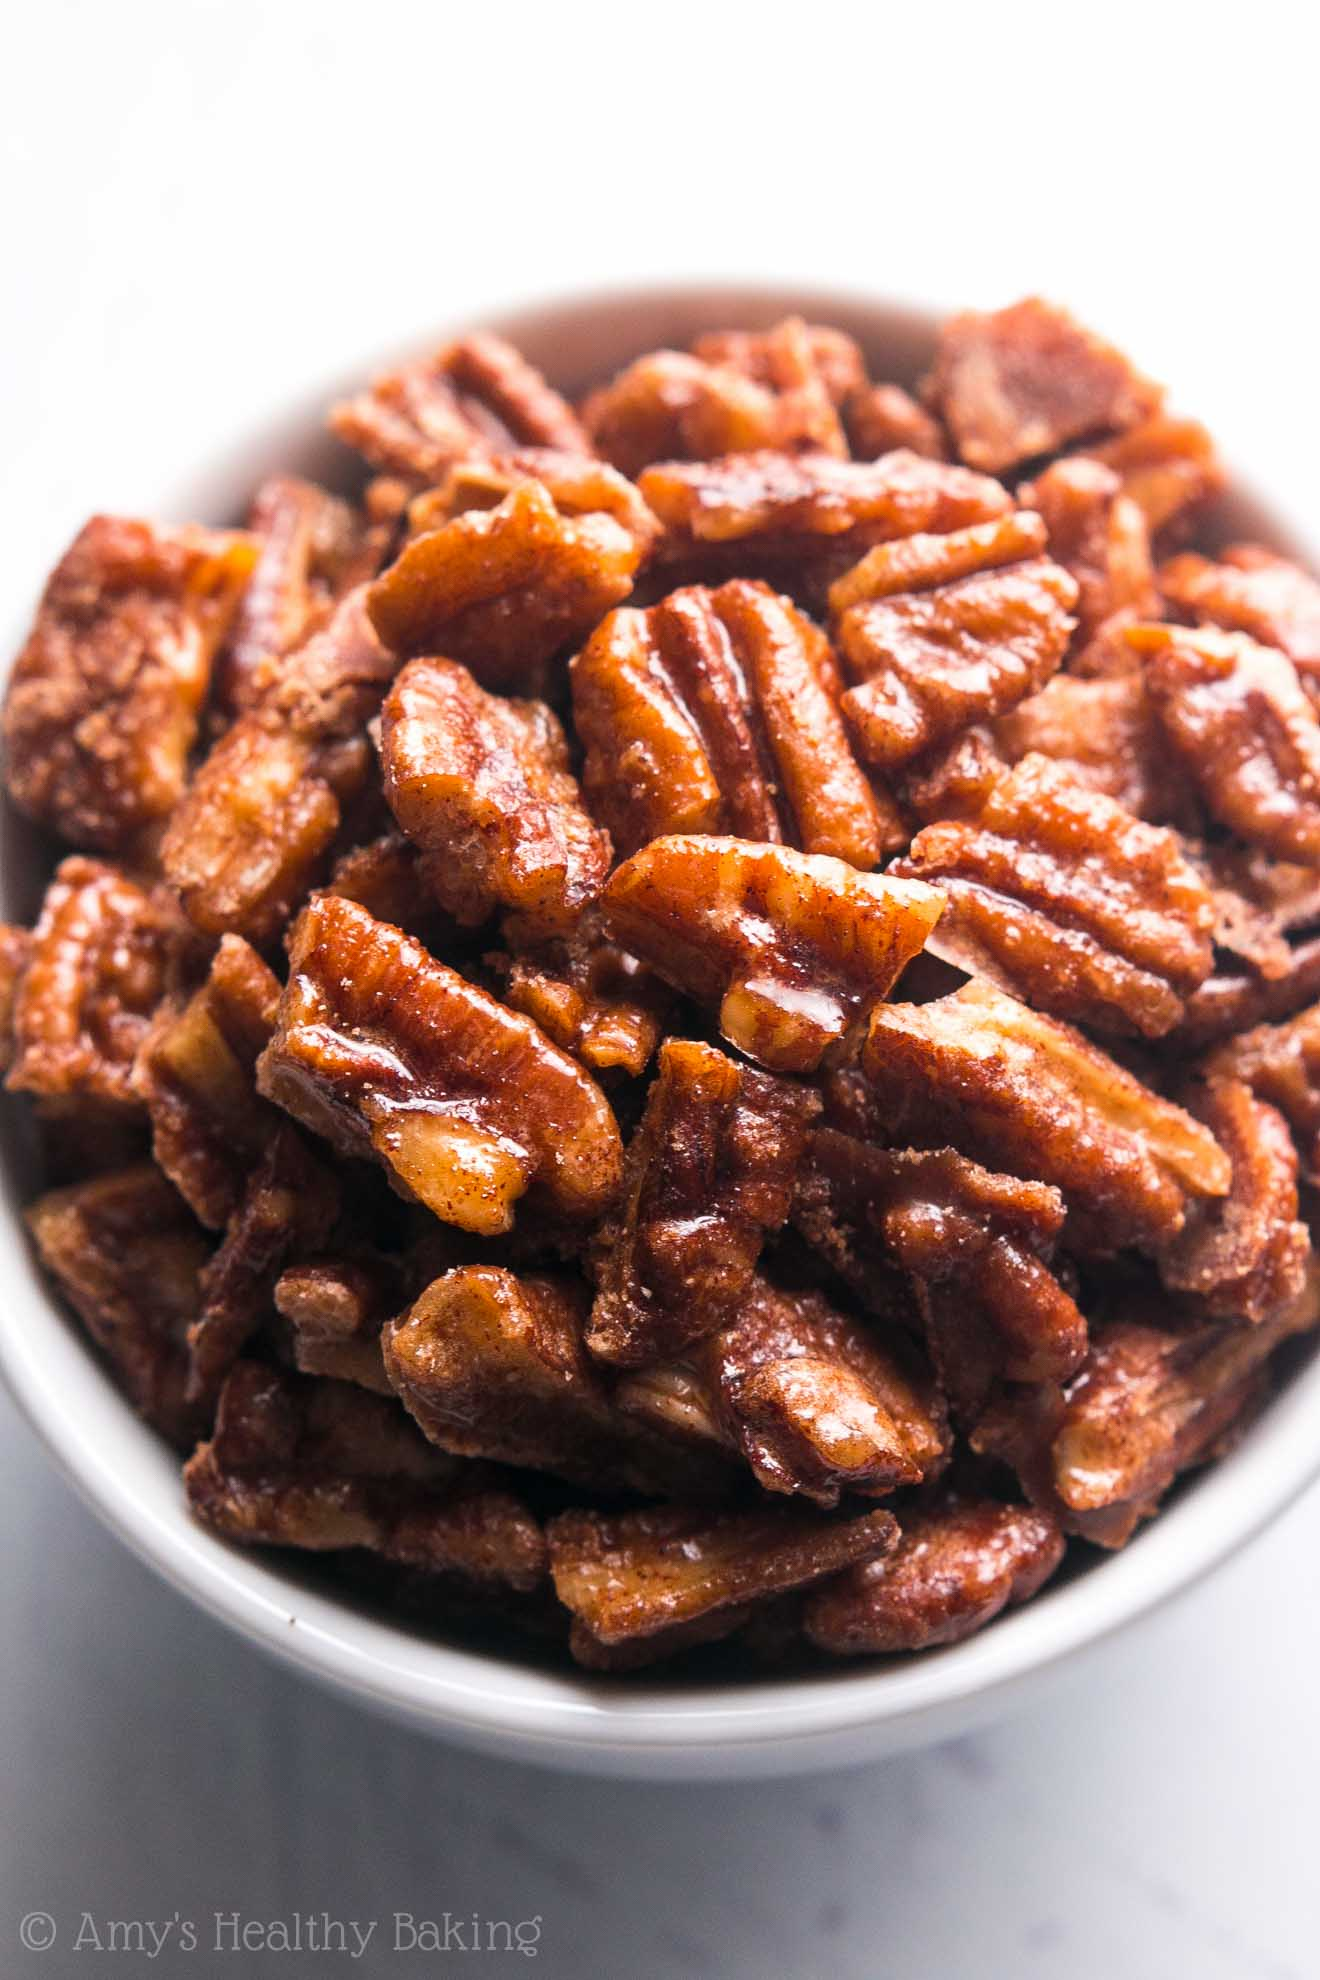 The easiest, quickest, BEST recipe for candied pecans you'll ever try! These taste EXACTLY like pecan pie but without all the work!